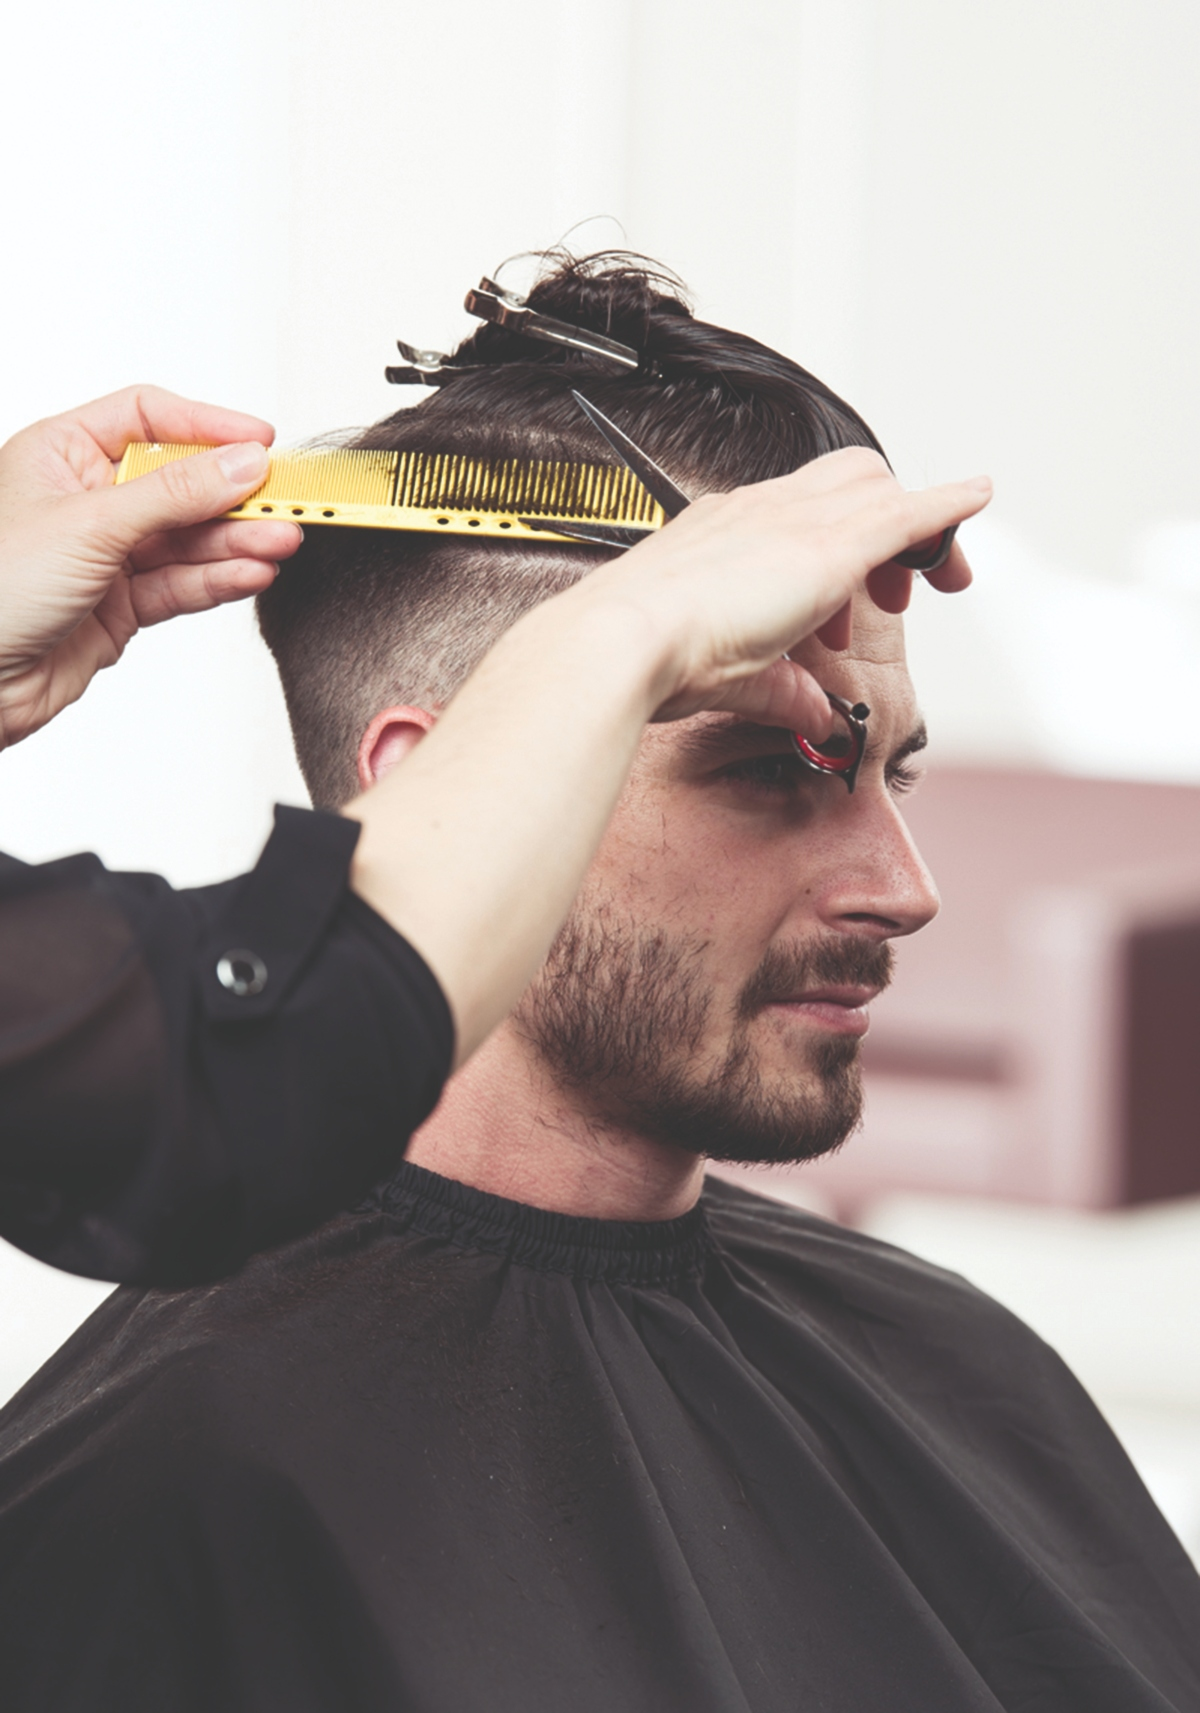 stella_trend_2019_barber_step7